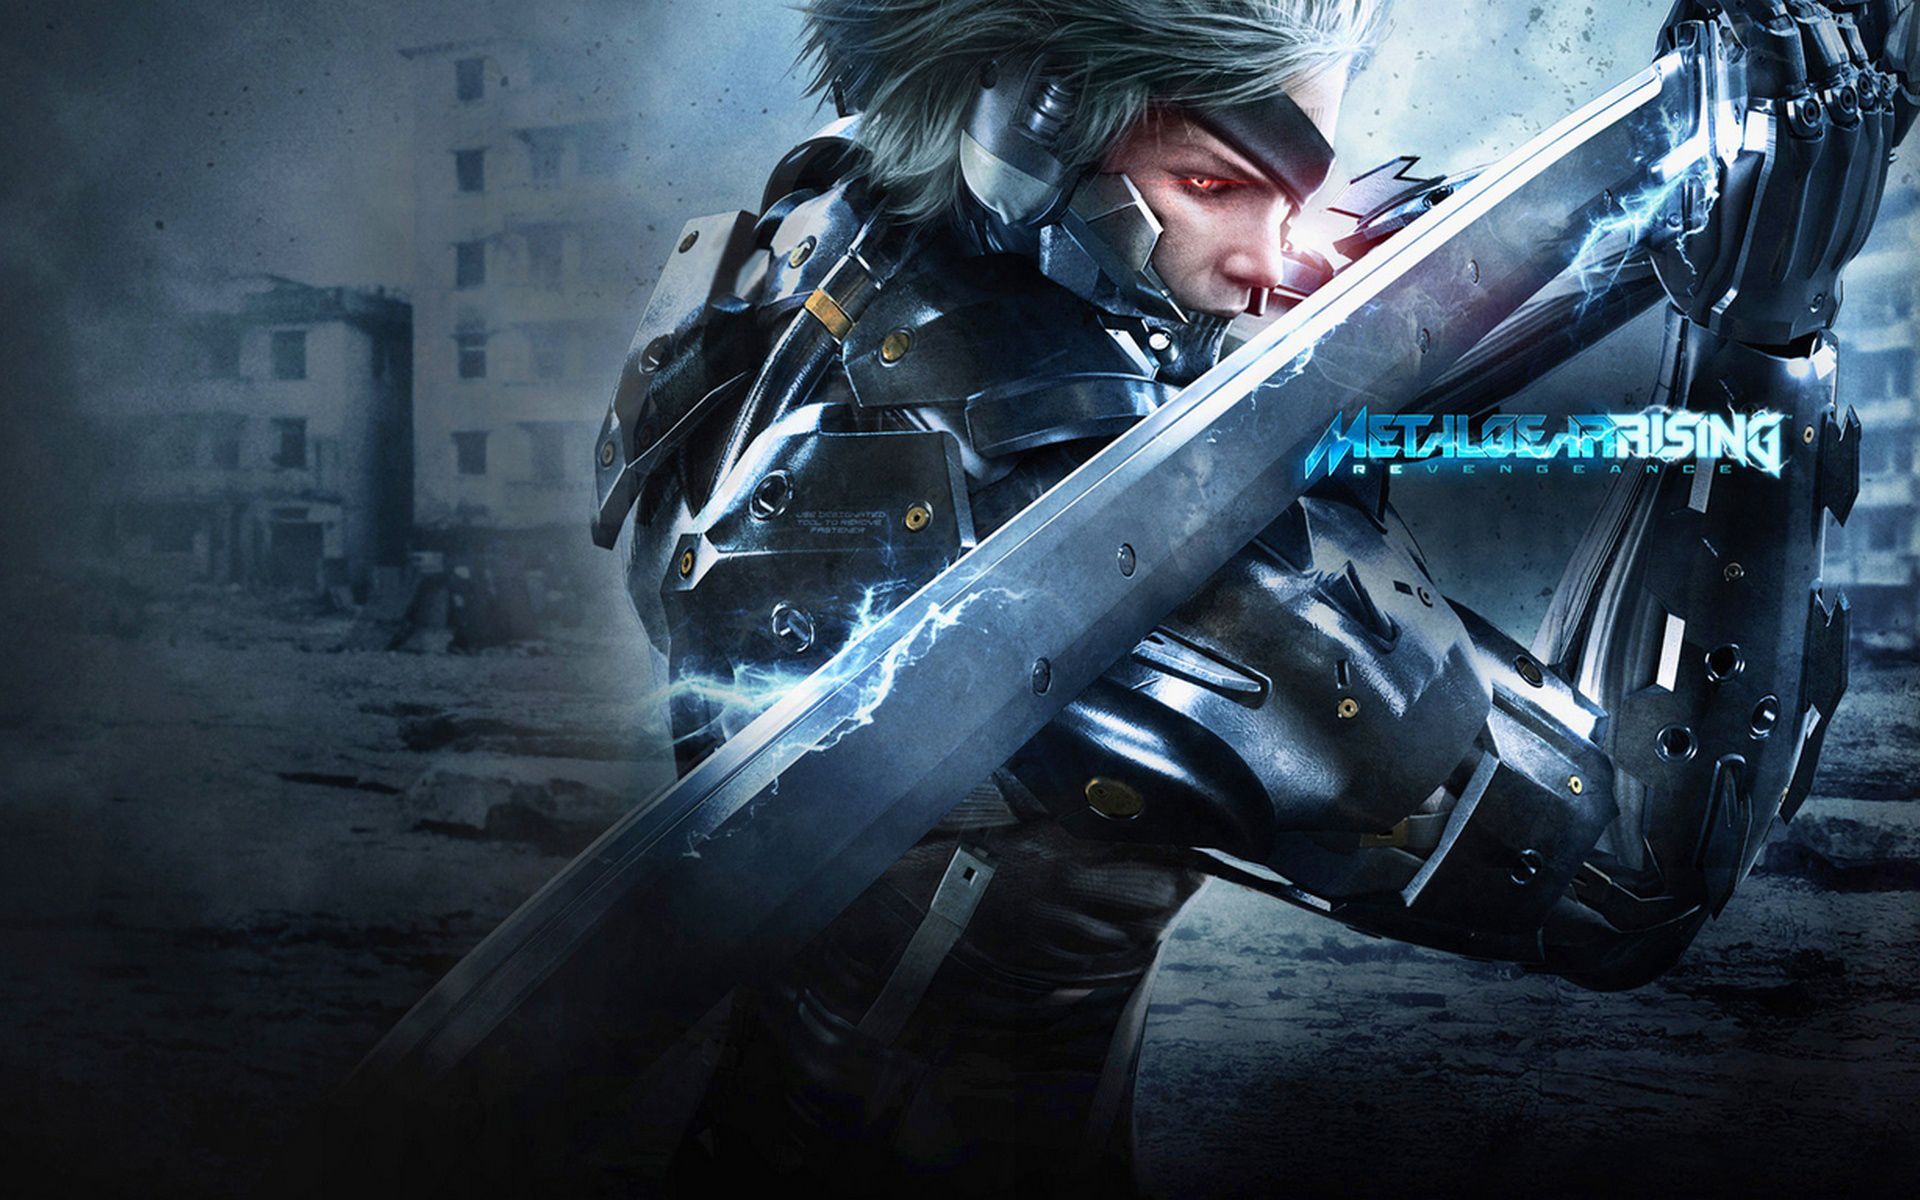 metal_gear_rising_reveng1eance-wide